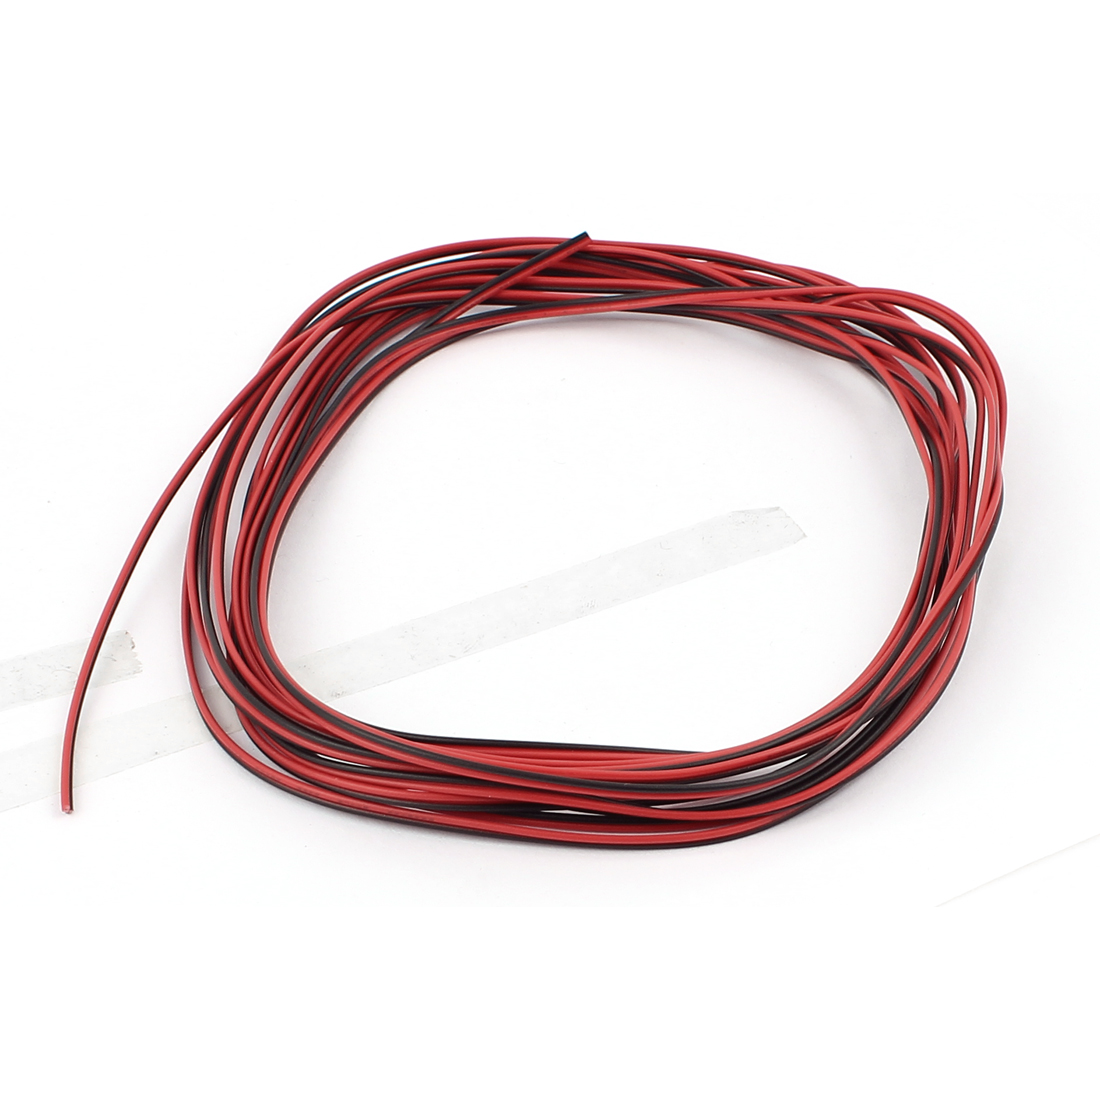 28AWG Indoor Outdoor PVC Insulated Electrical Wire Cable Black Red 5 Meters